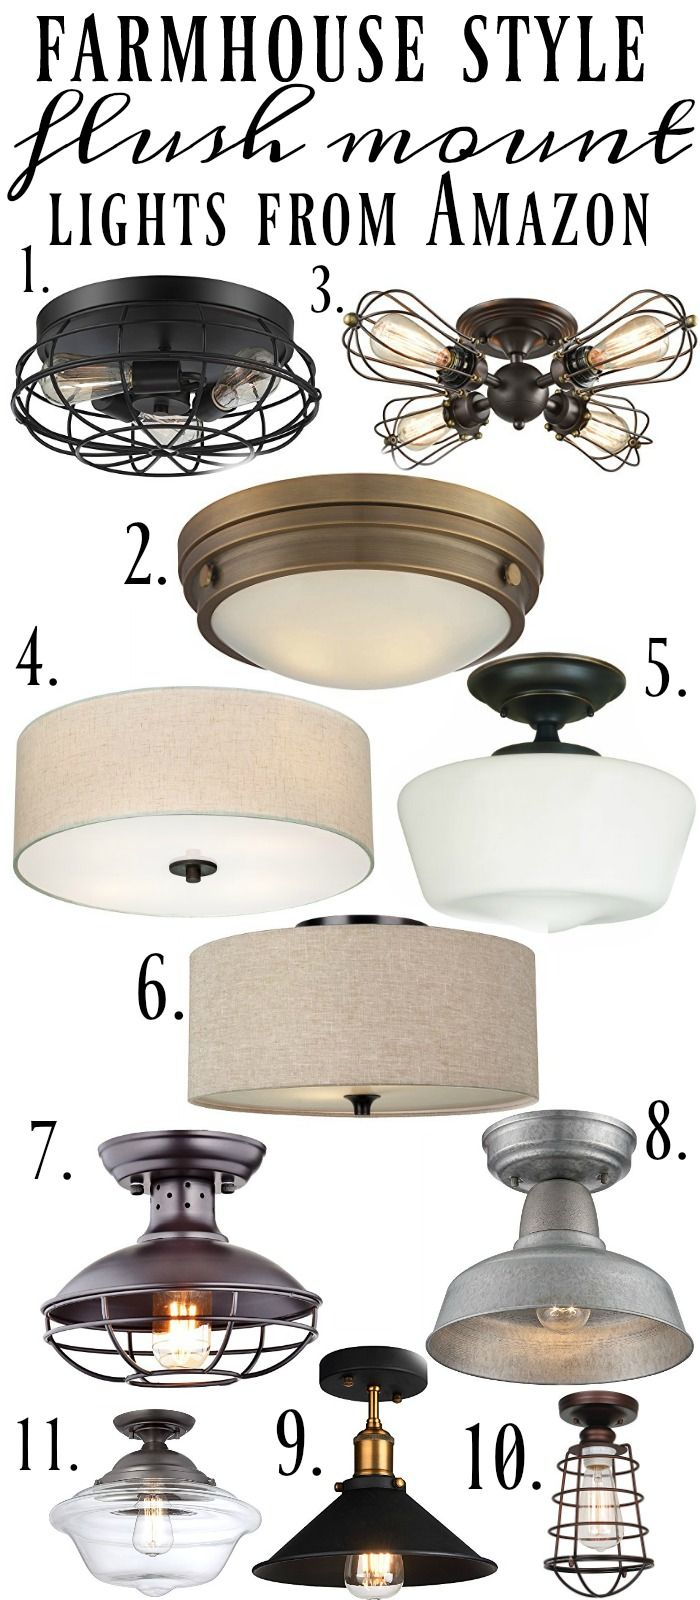 Farmhouse Flush Mount Lights Farmhouse Light Fixtures Laundry